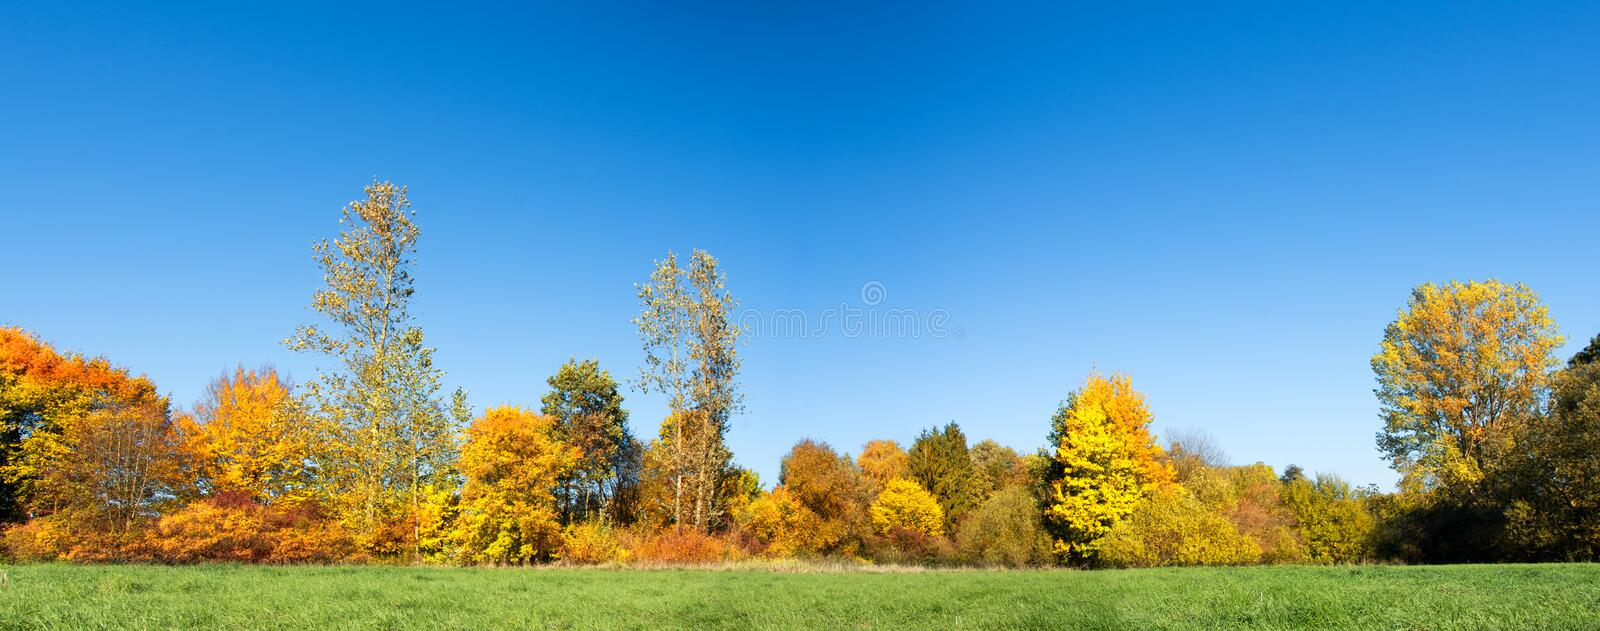 Premier plan coloré d'Autumn Forest With Green Meadow In - vue panoramique chez Sunny Day photographie stock libre de droits